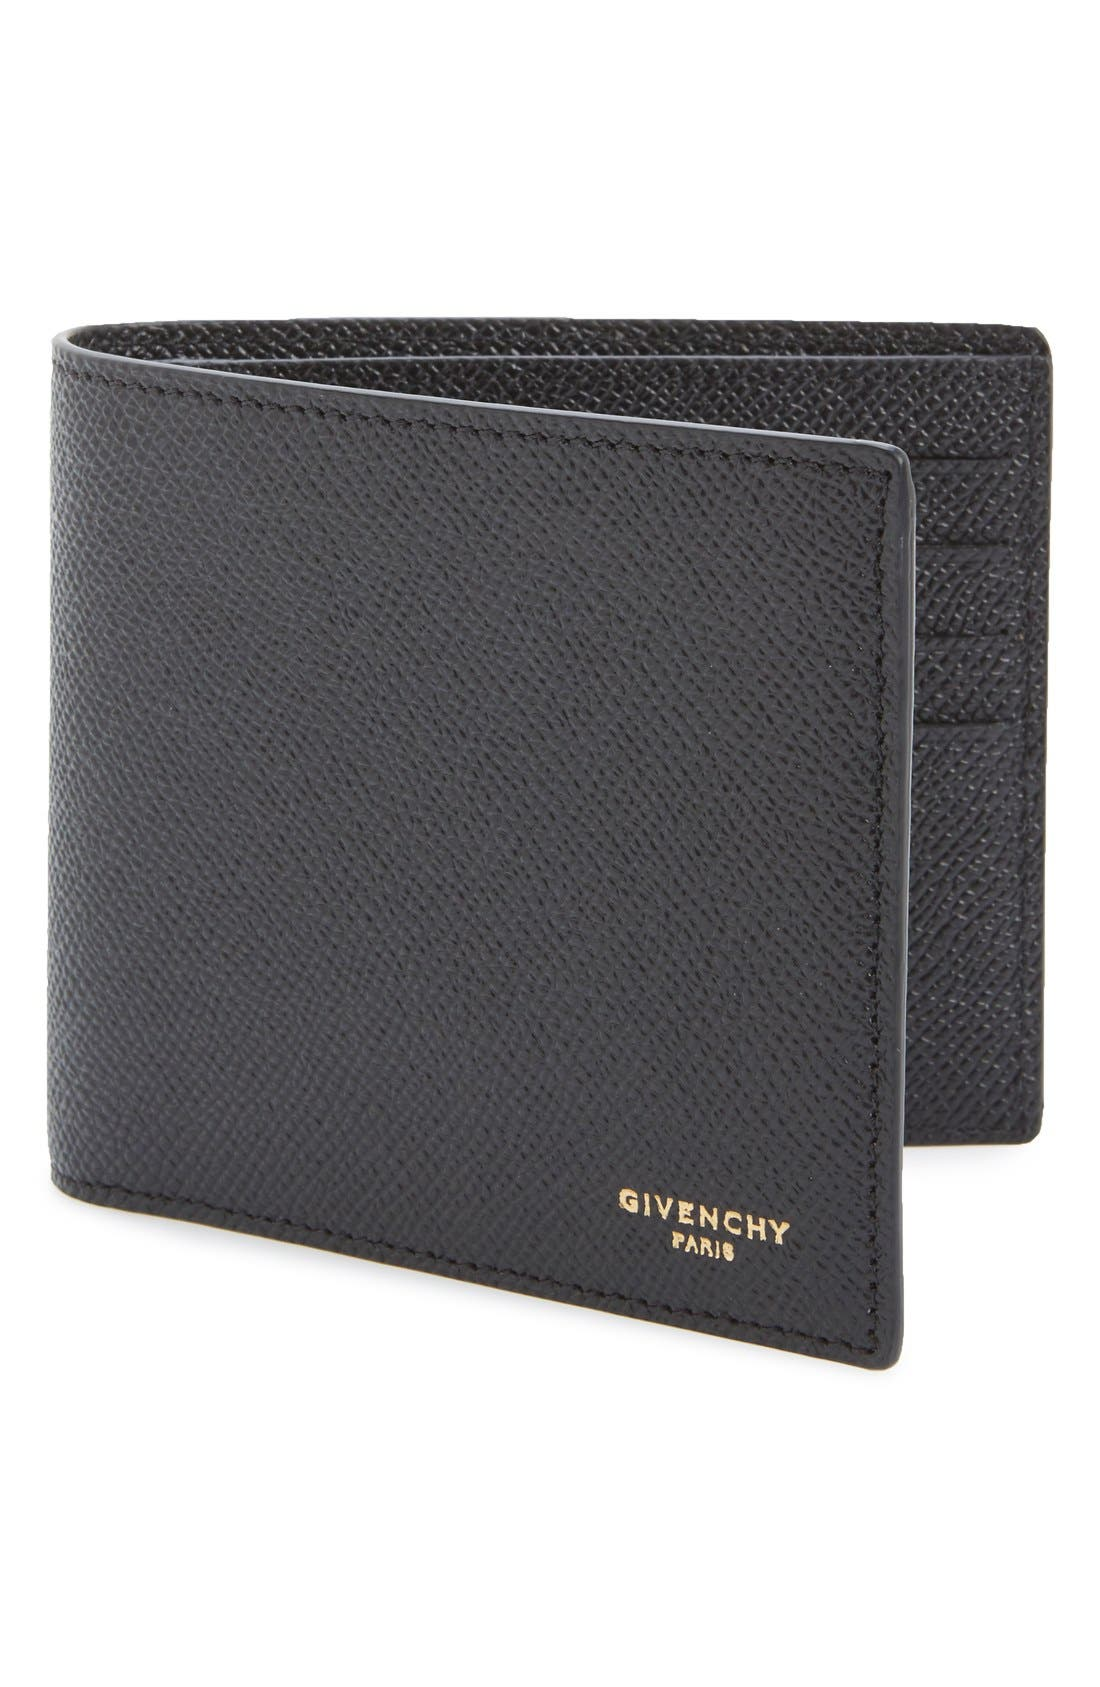 GIVENCHY Calfskin Leather Bifold Wallet